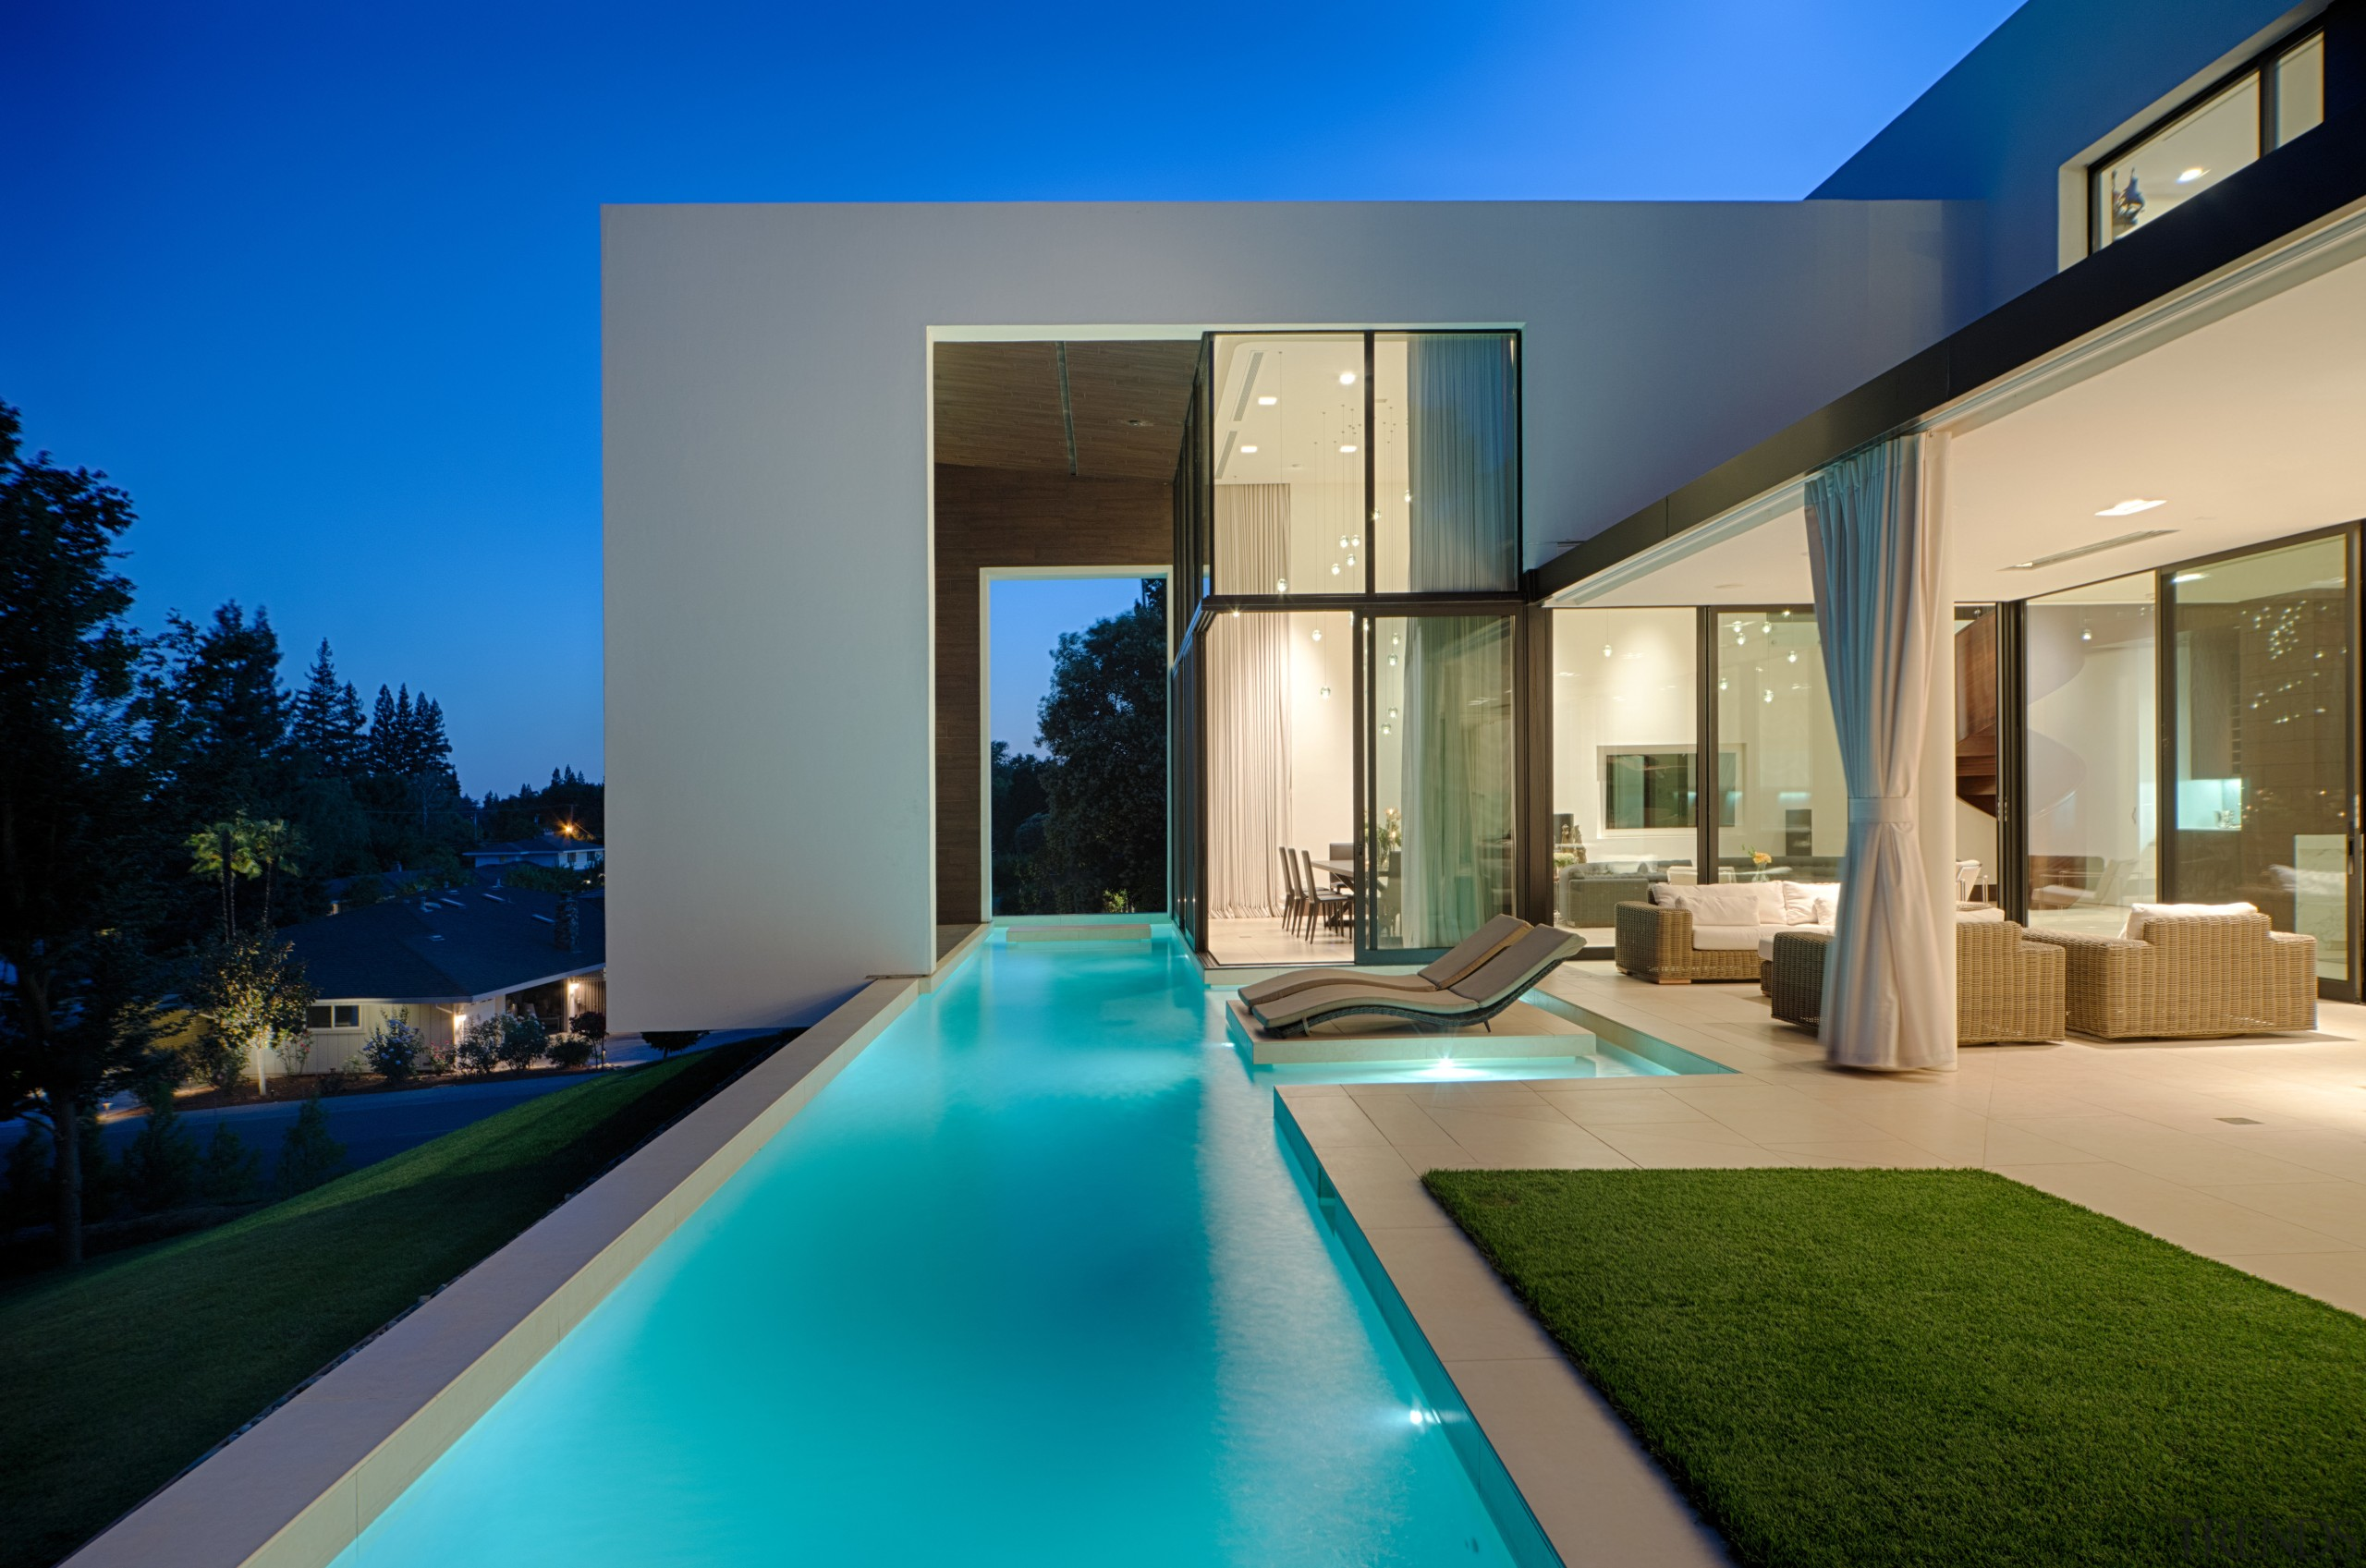 In a warm climate, the boundaries between inside apartment, architecture, condominium, estate, home, house, interior design, lighting, property, real estate, swimming pool, villa